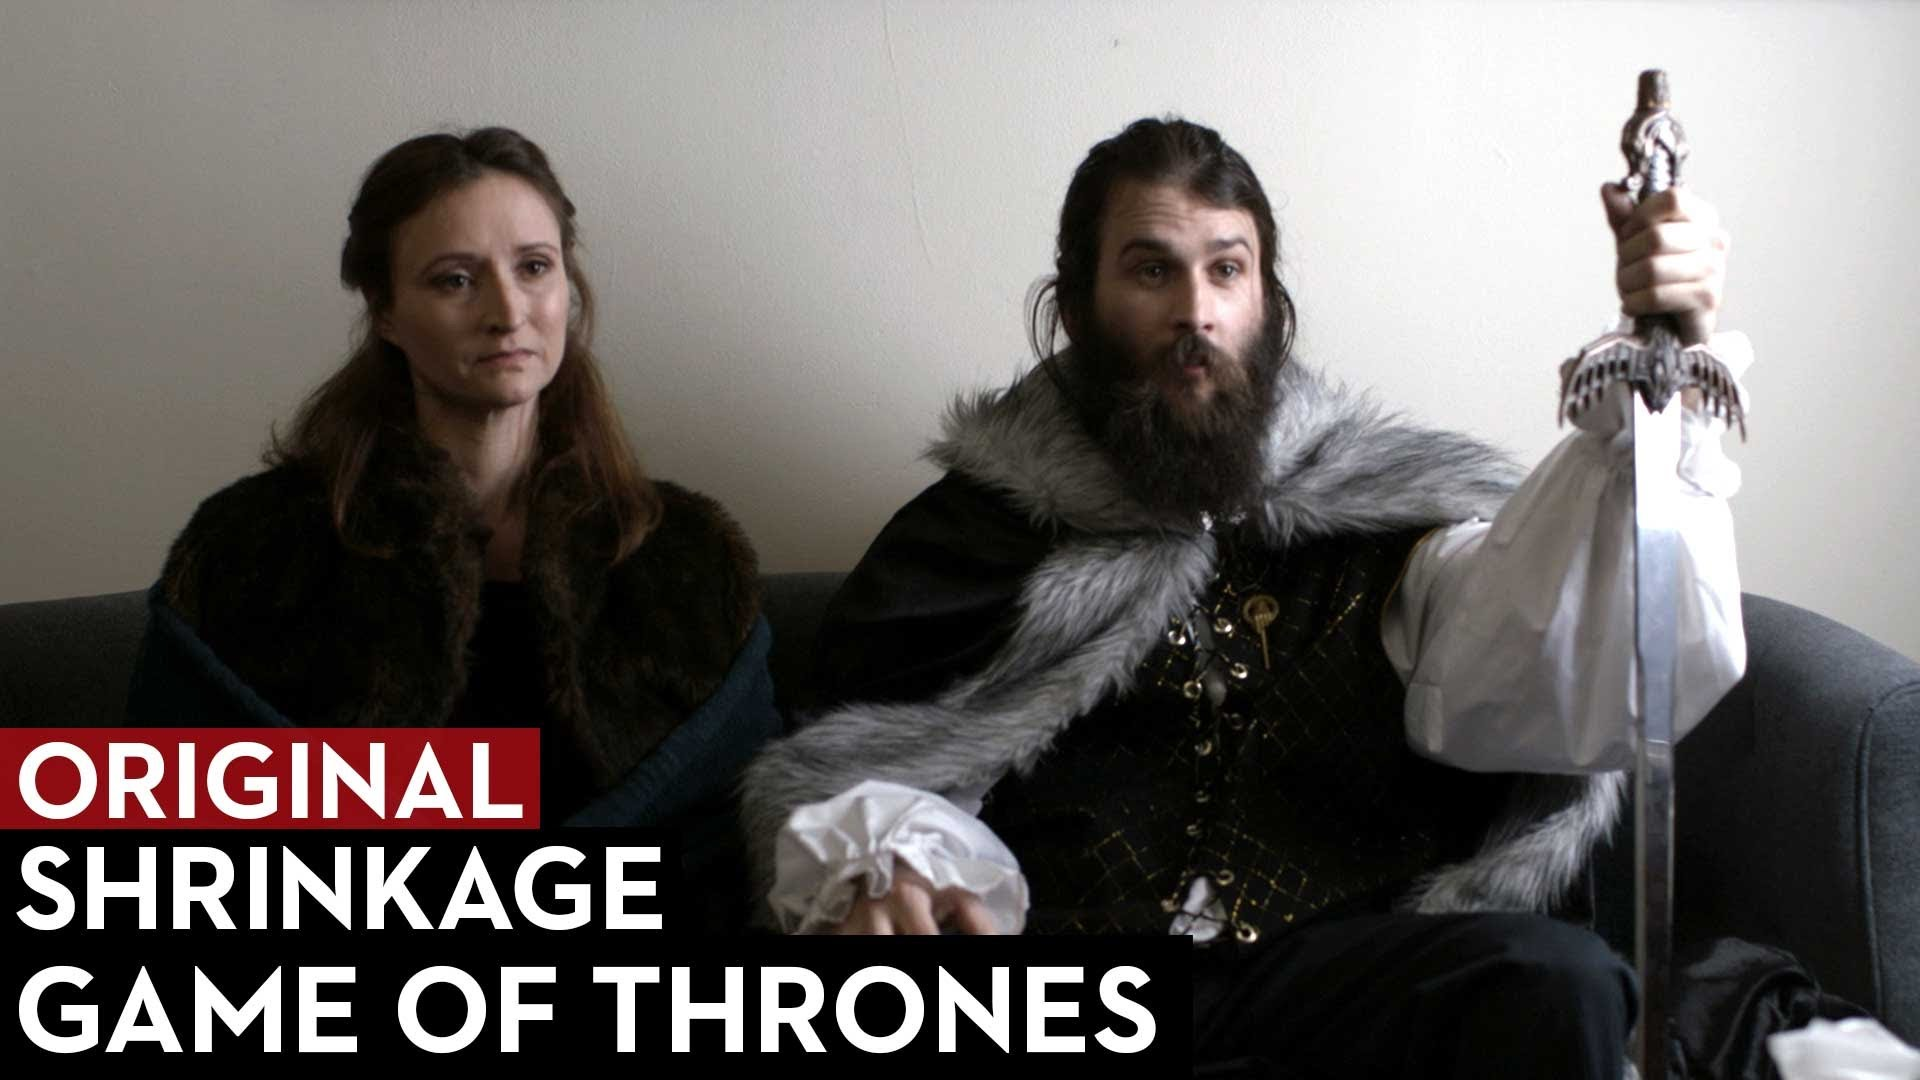 Game of Thrones' Ned Stark and Catelyn Stark Go to Therapy – Shrinkage Episode 4